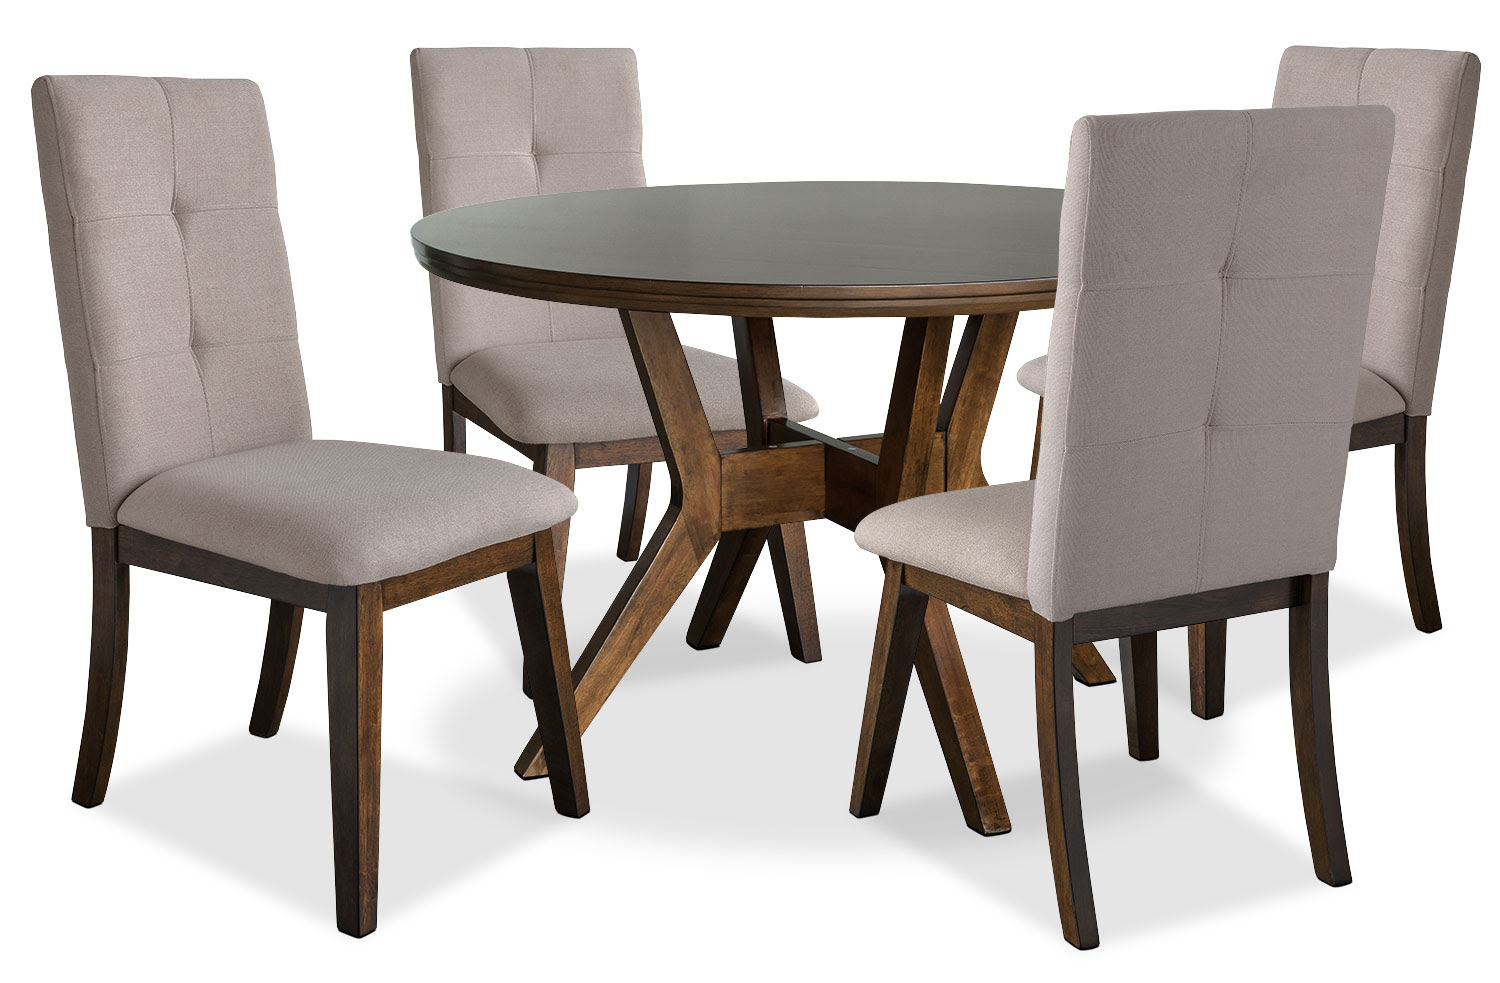 Chelsea 5-Piece Round Dining Table Package with Beige ...